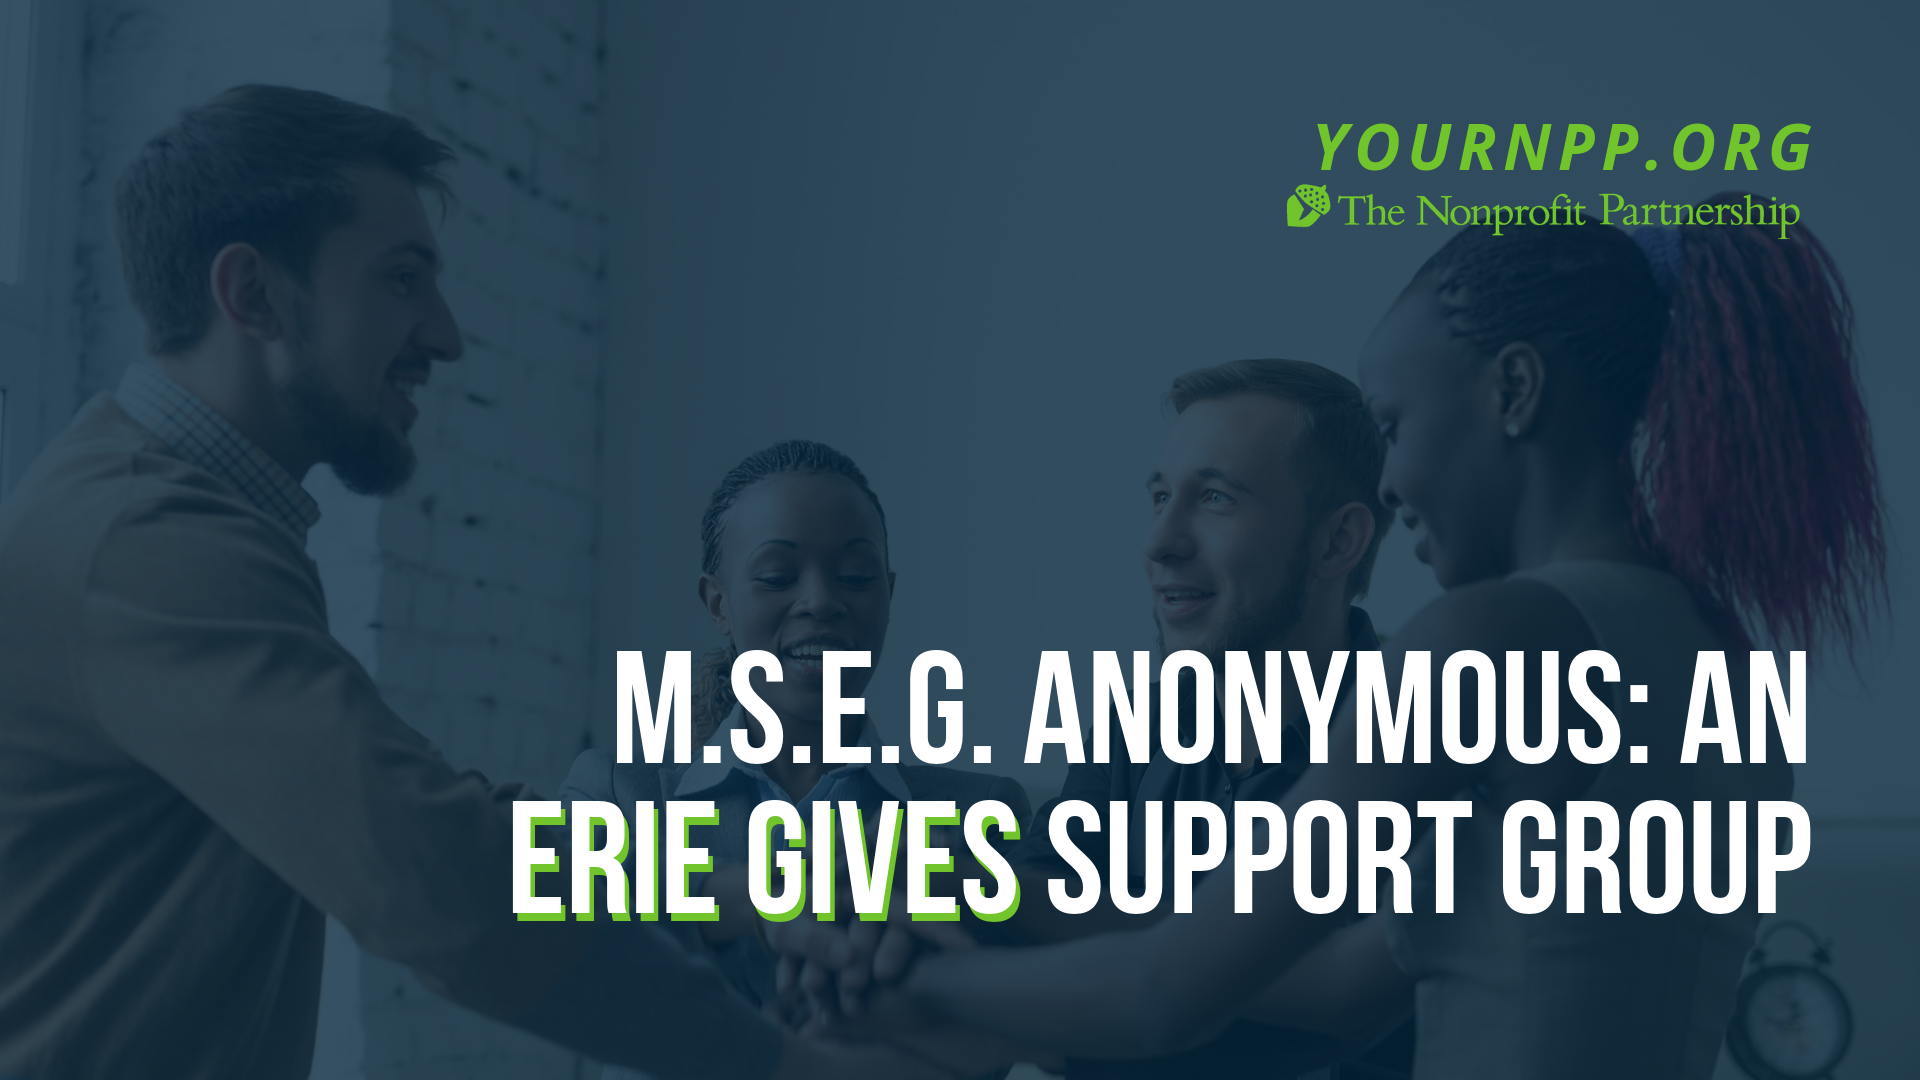 M.S.E.G Anonymous: An Erie Gives Support Group